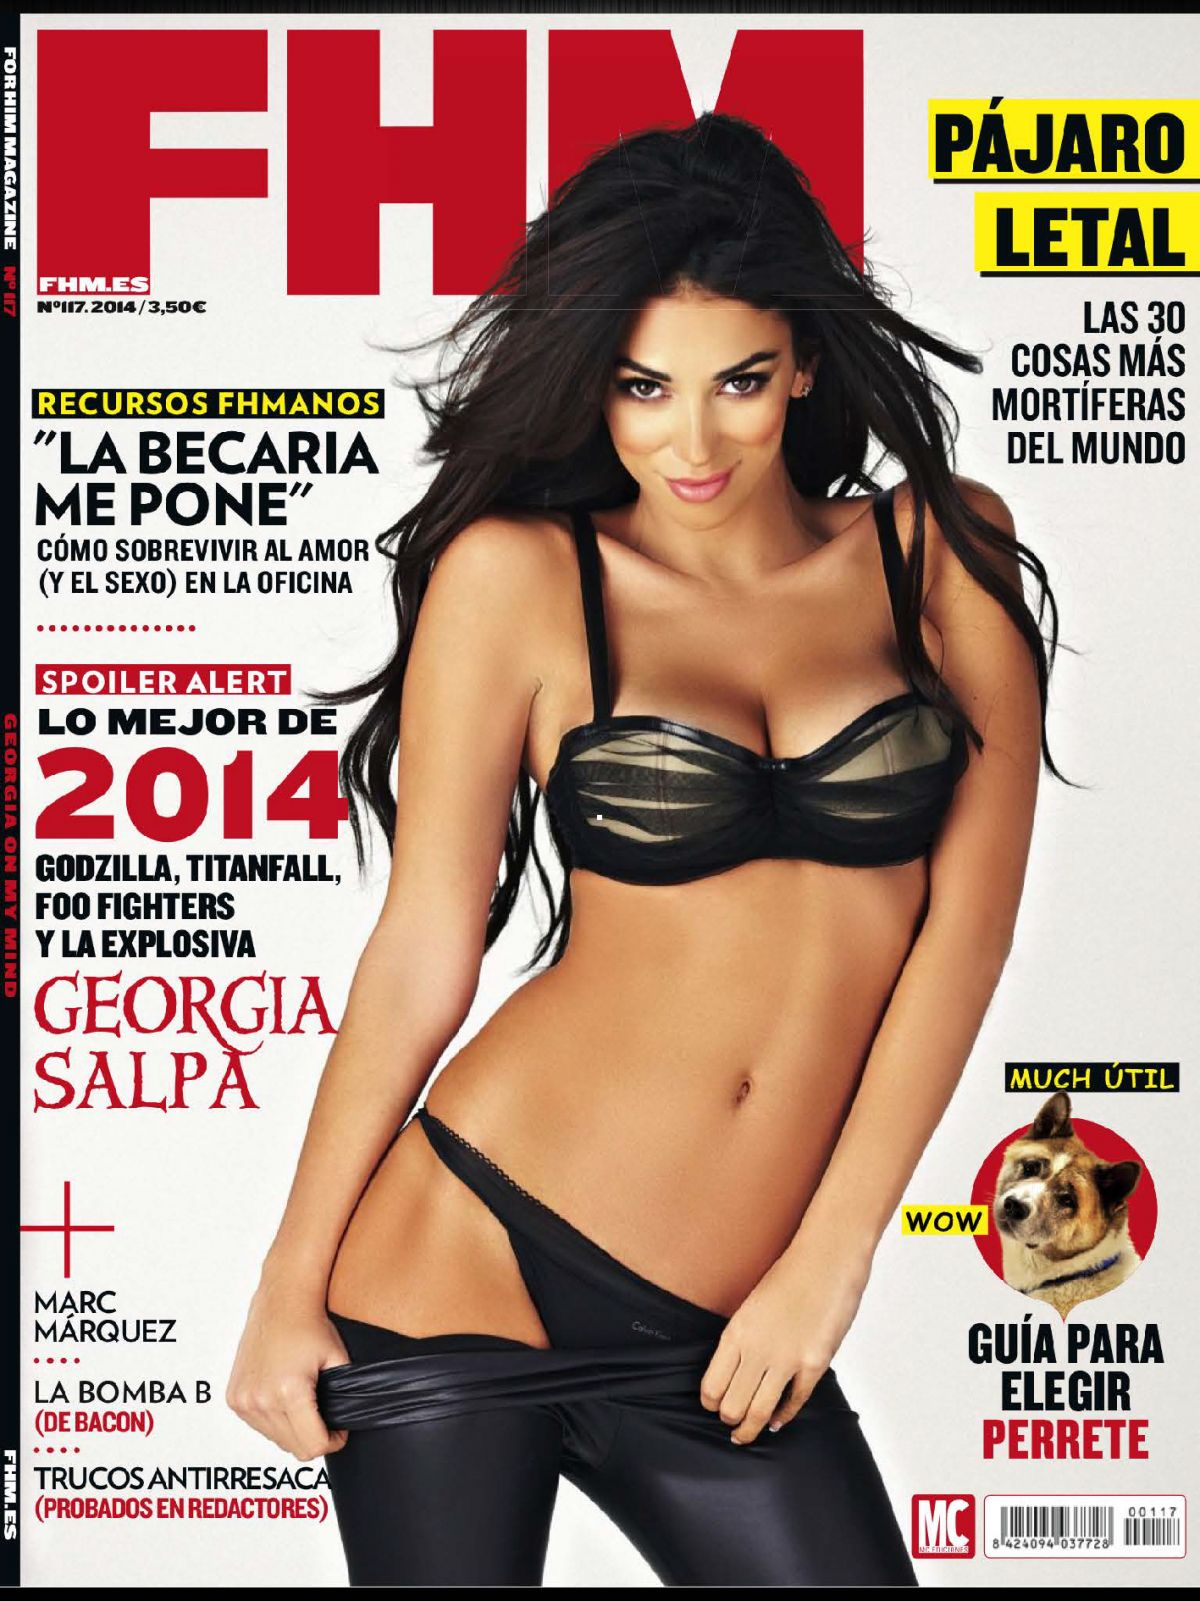 GEORGIA SALPA in FHM Magazine, Spain February 2014 Issue